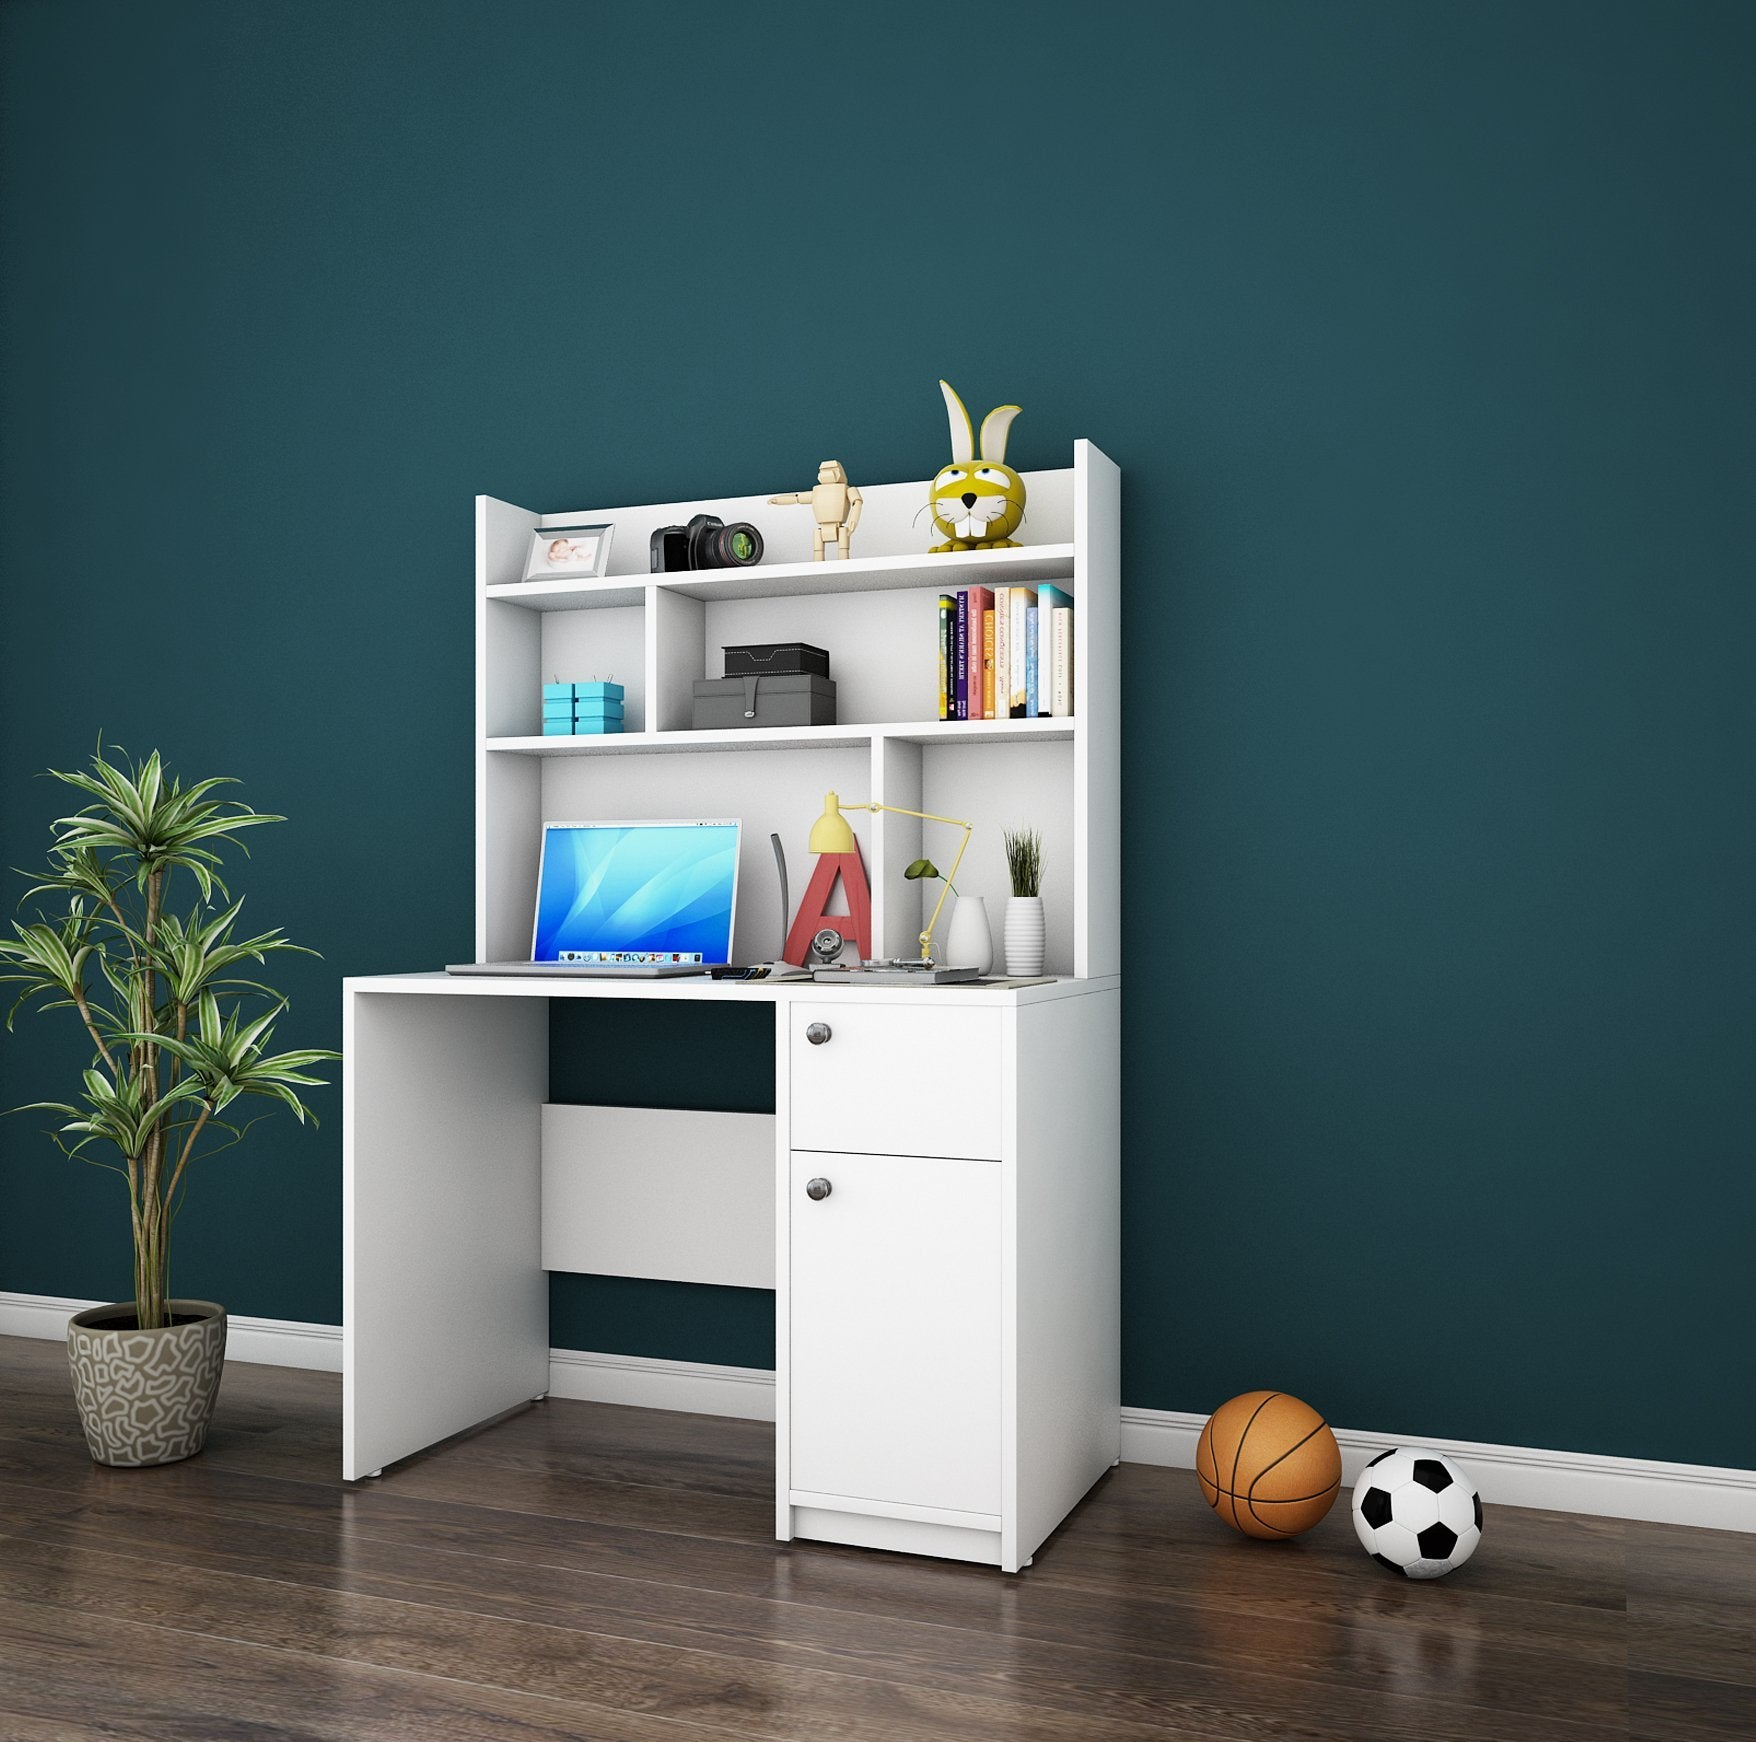 Starbuzz Study Table in White Colour by Dream Box